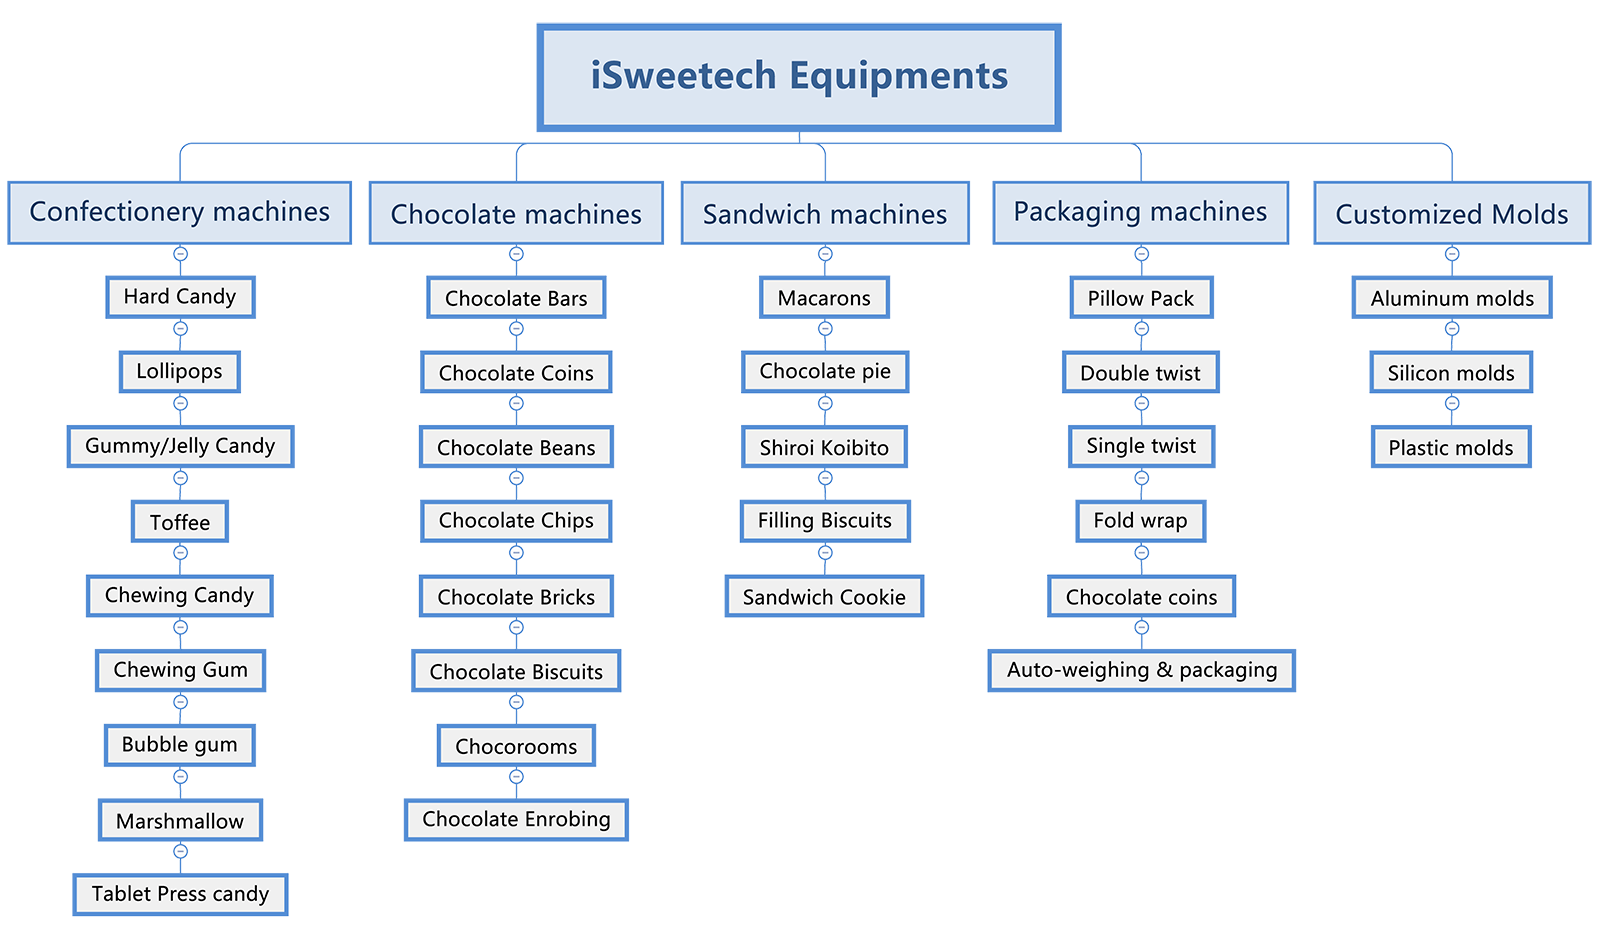 iSweetech Equipments for confectionery industry